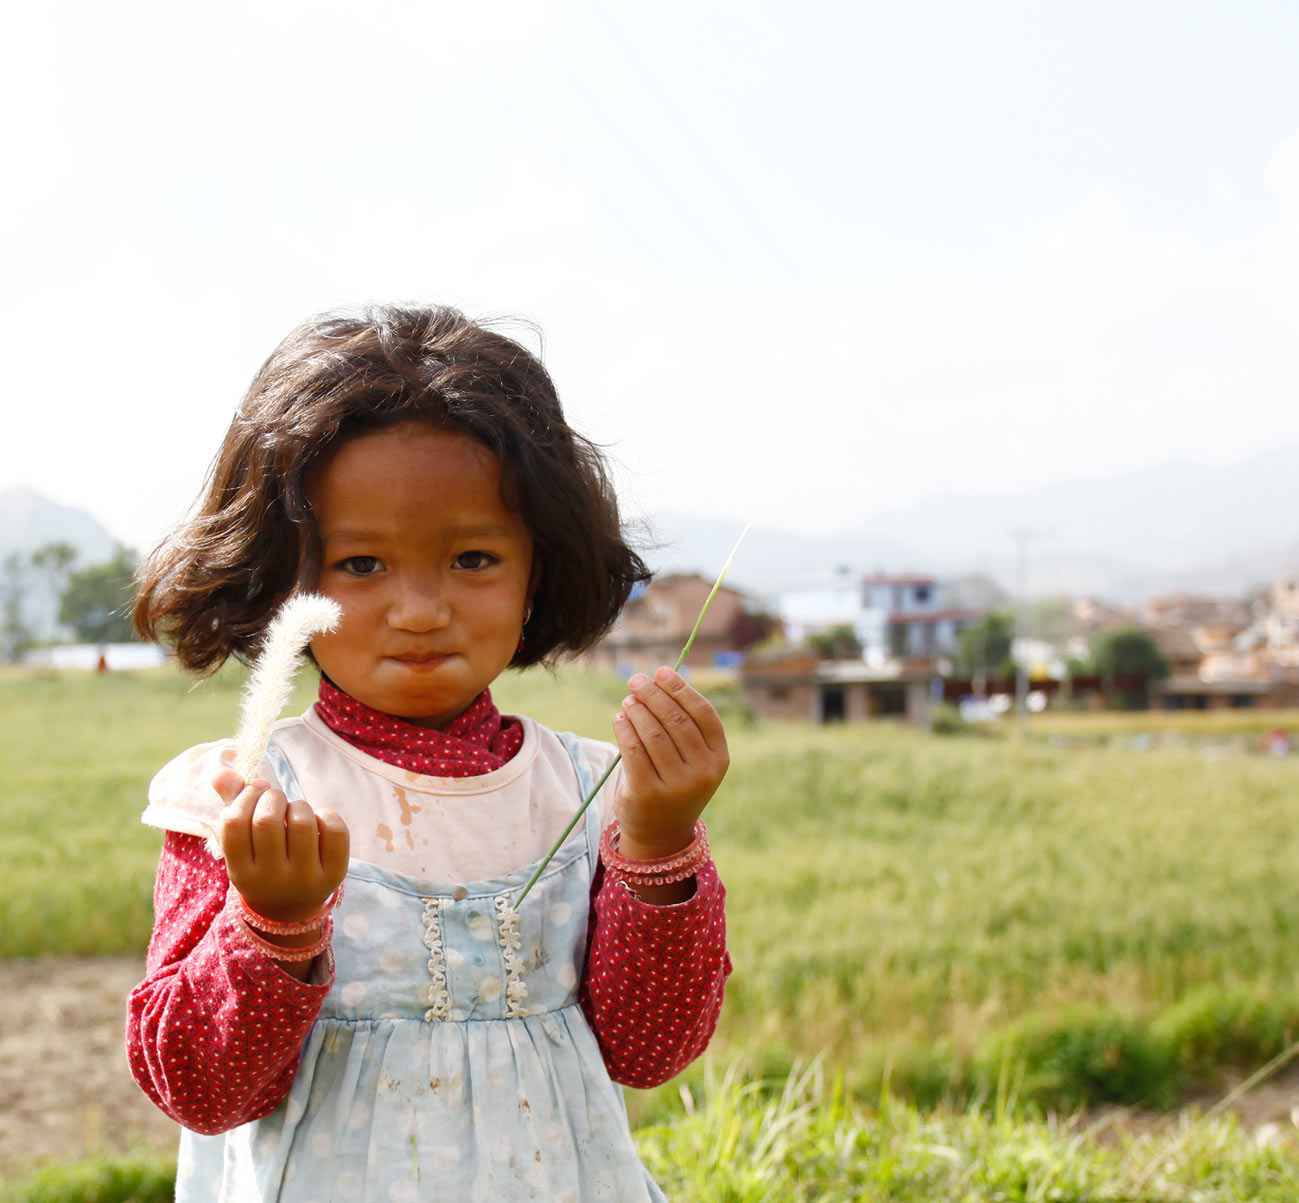 A girl in Nepal holds up a blade of grass and what could be either a feather or a grass flower with mountains and a town in the background